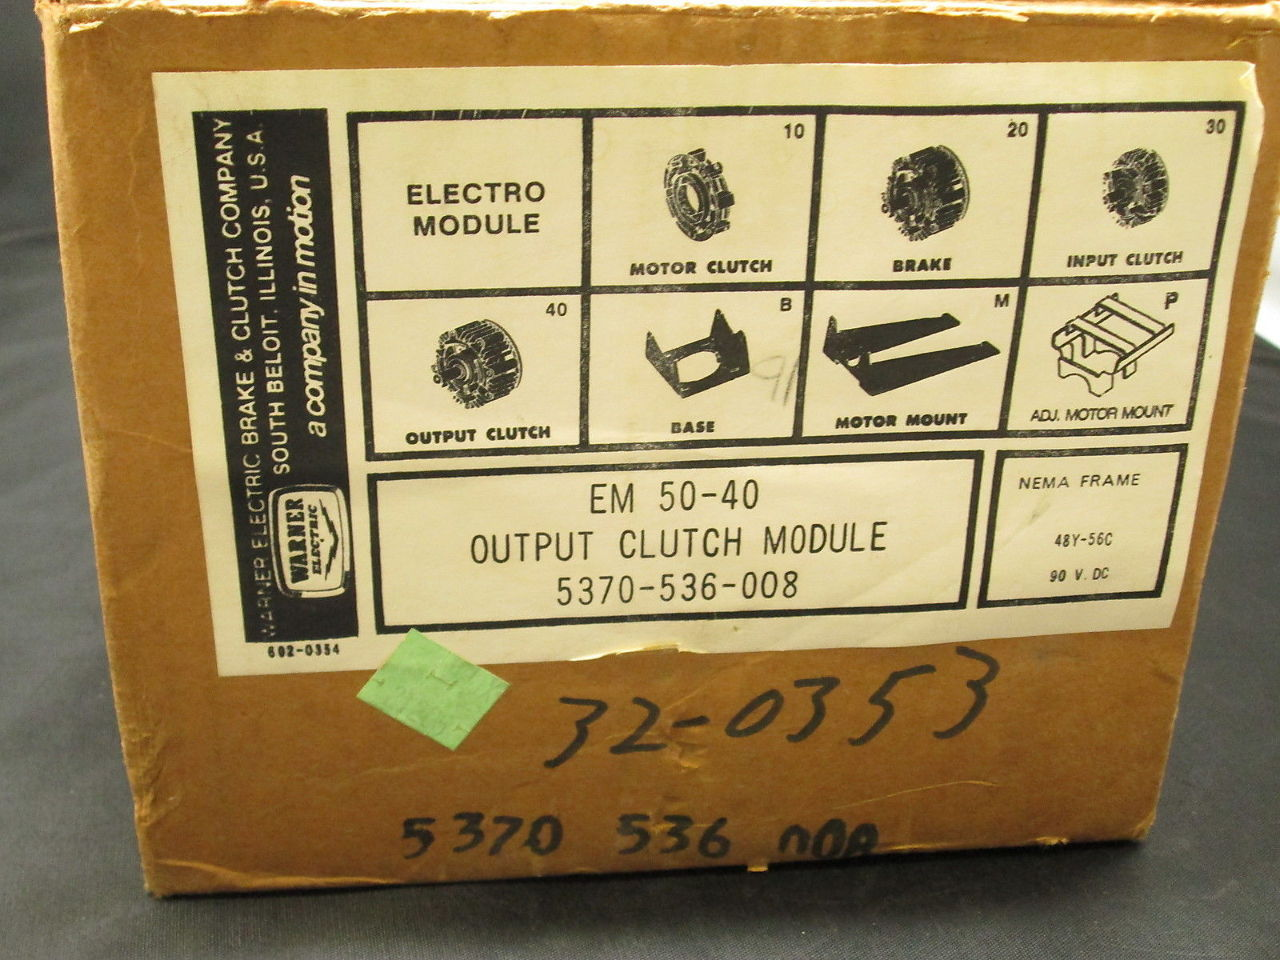 ... Warner Electric Electro Module EM-50-40 5370-536-008 Output Clutch